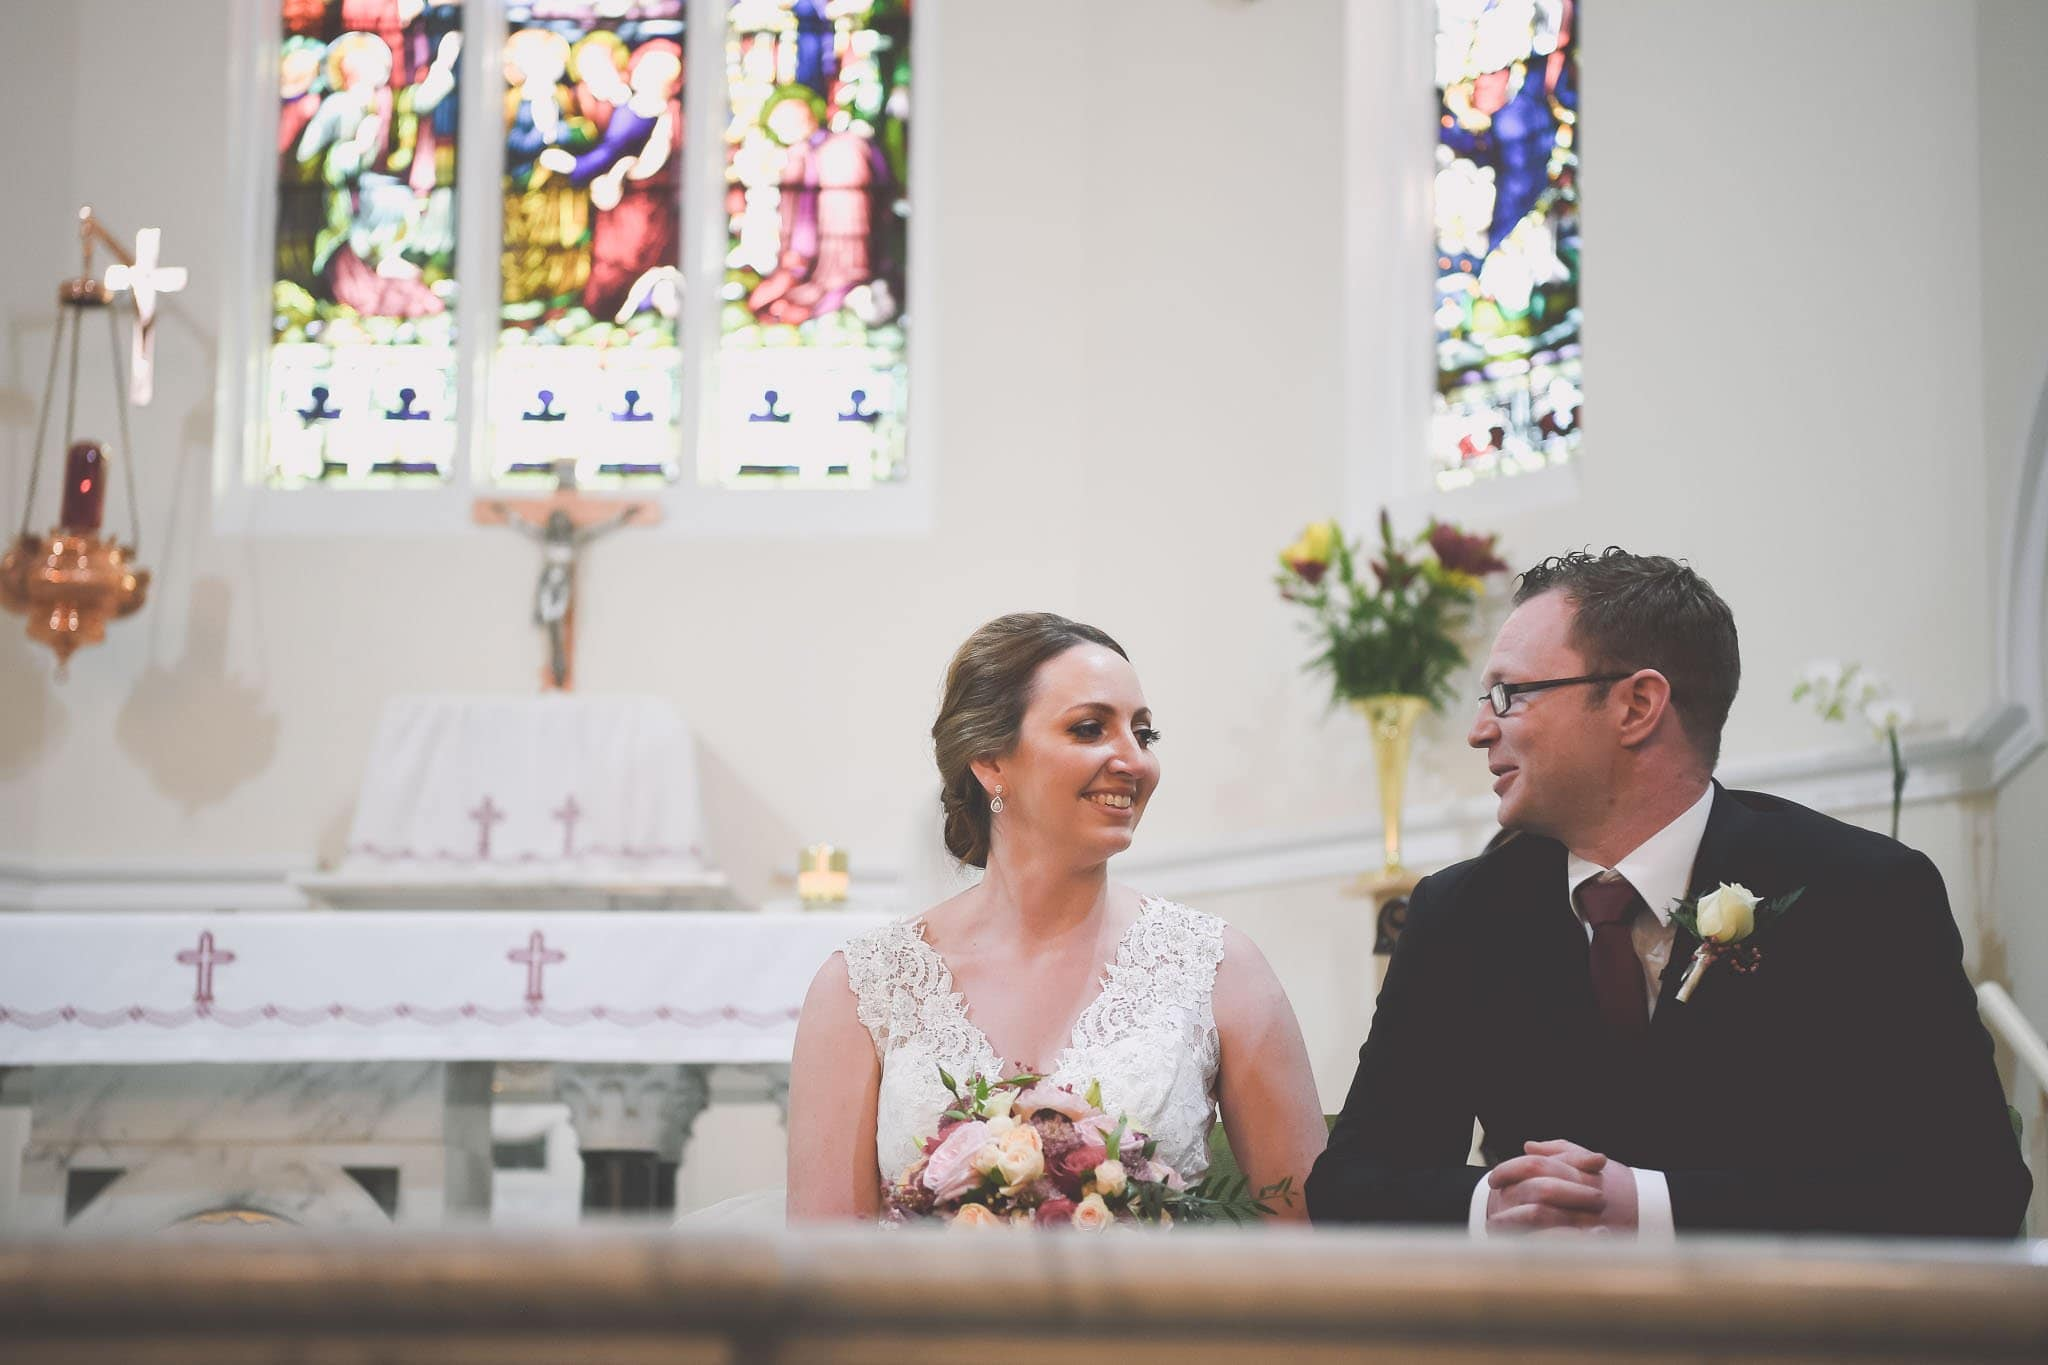 Candid Melbourne wedding photography of a bride and groom share a smile at the altar on their wedding day.